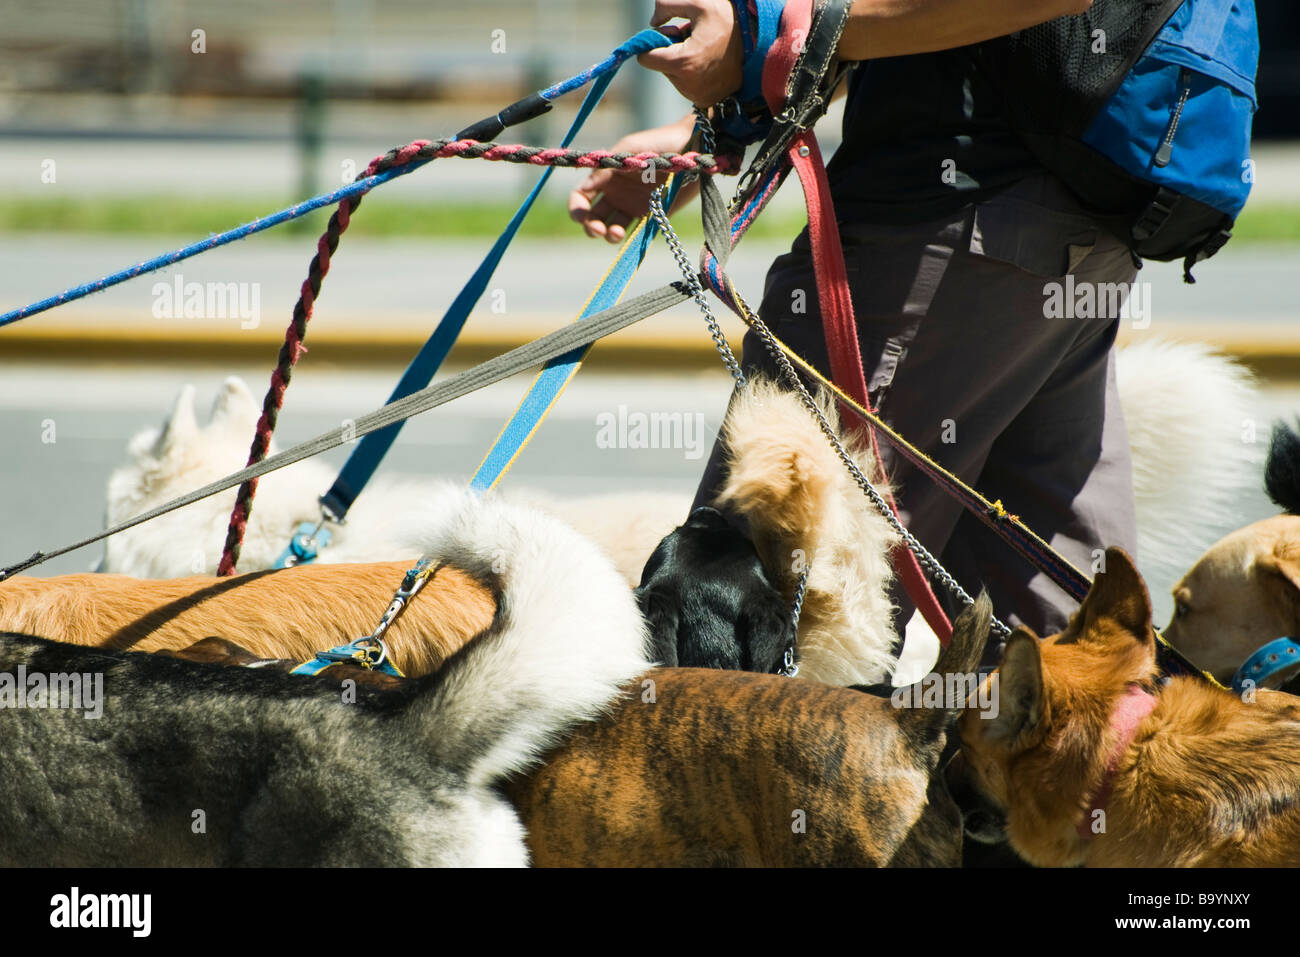 Person walking several dogs, cropped view - Stock Image